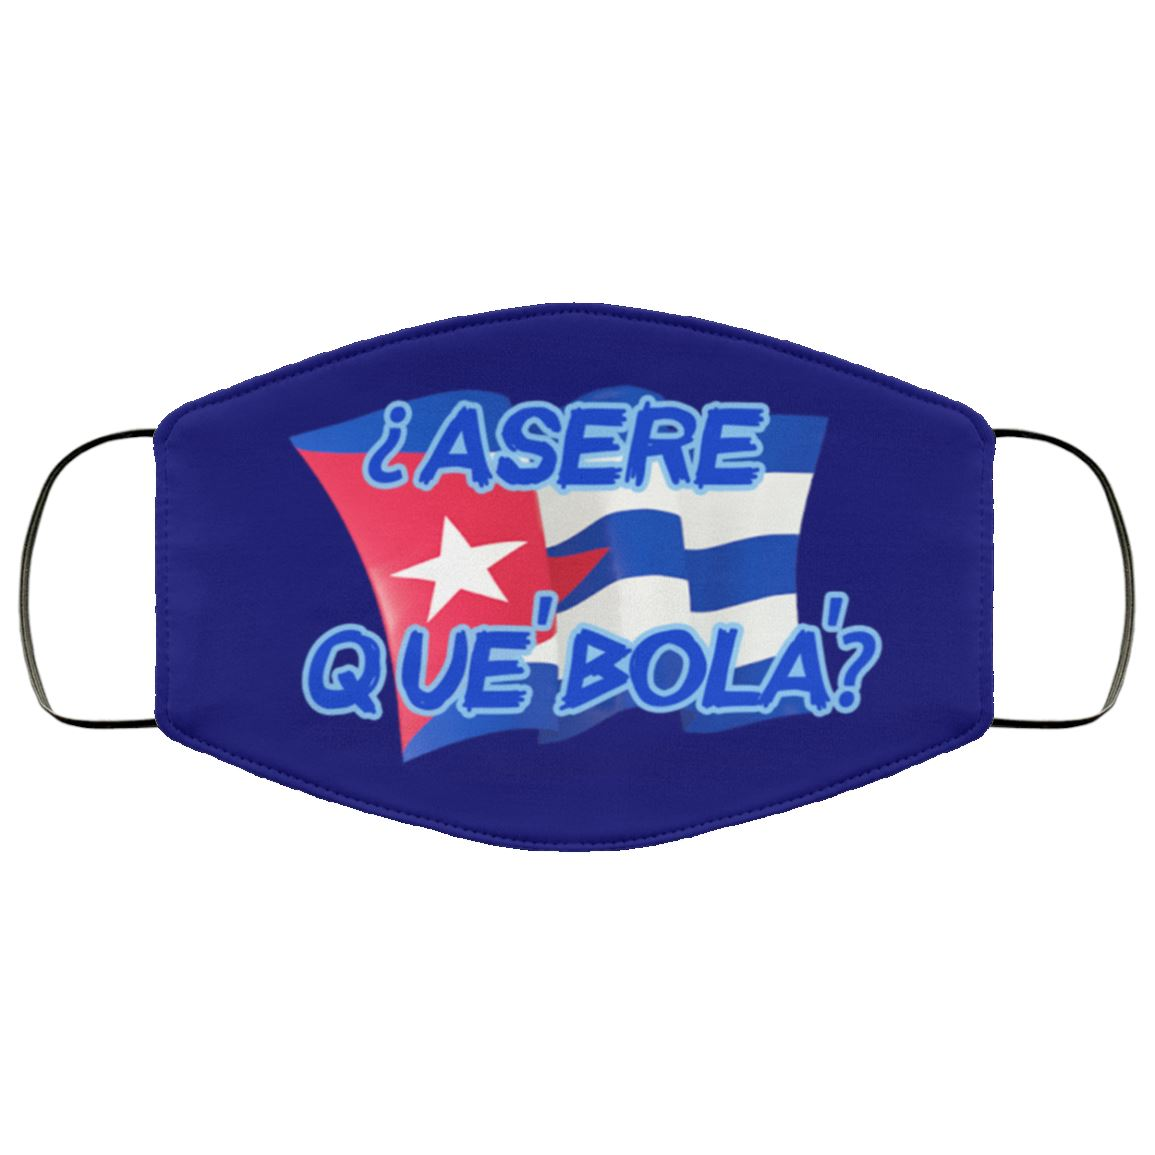 Cuban Que' Bola' Face Cover